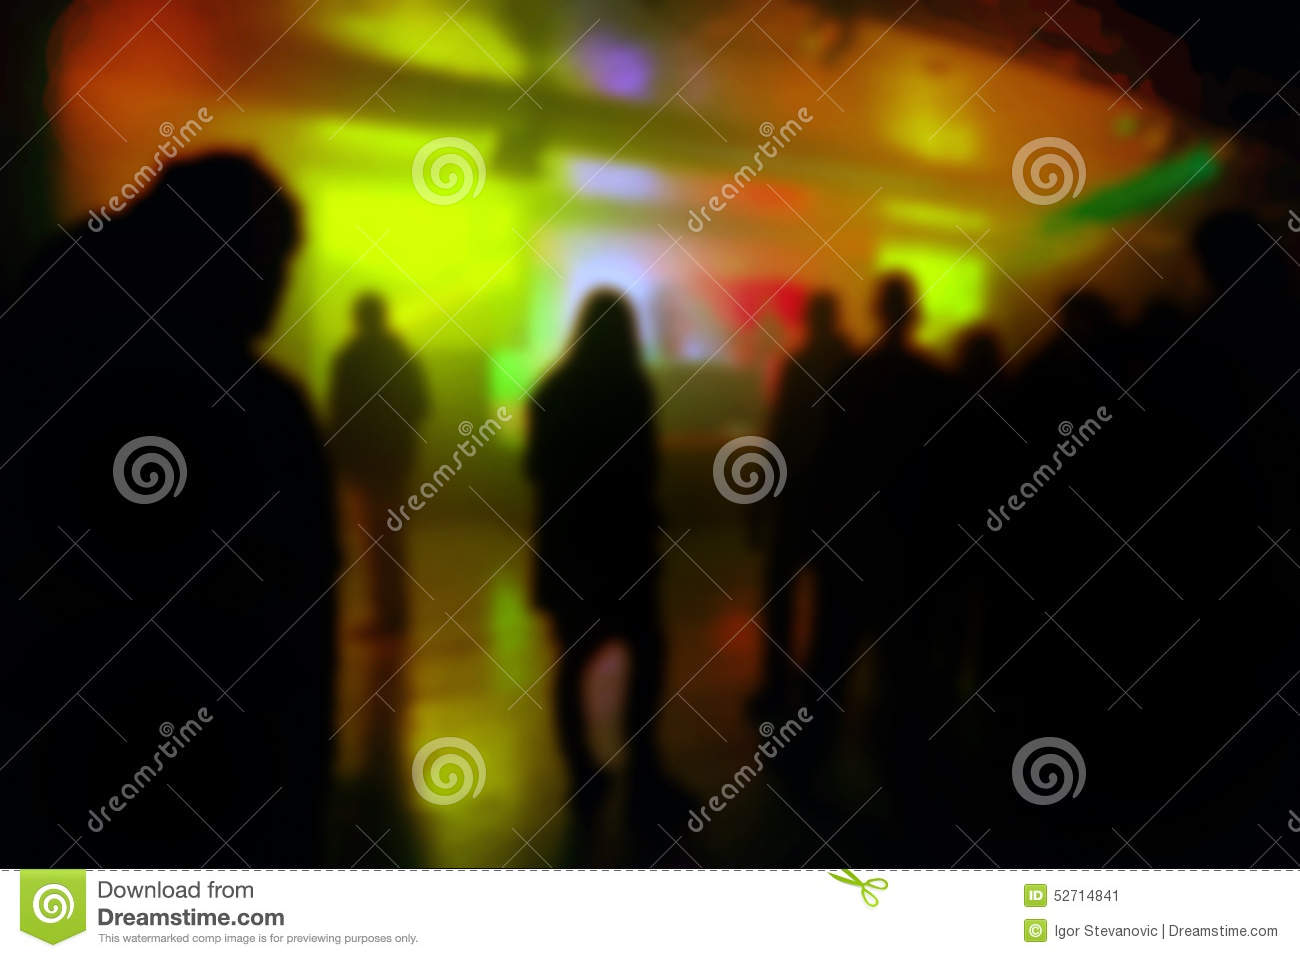 Blur Defocused Silhouettes of Young People on DJ Concert